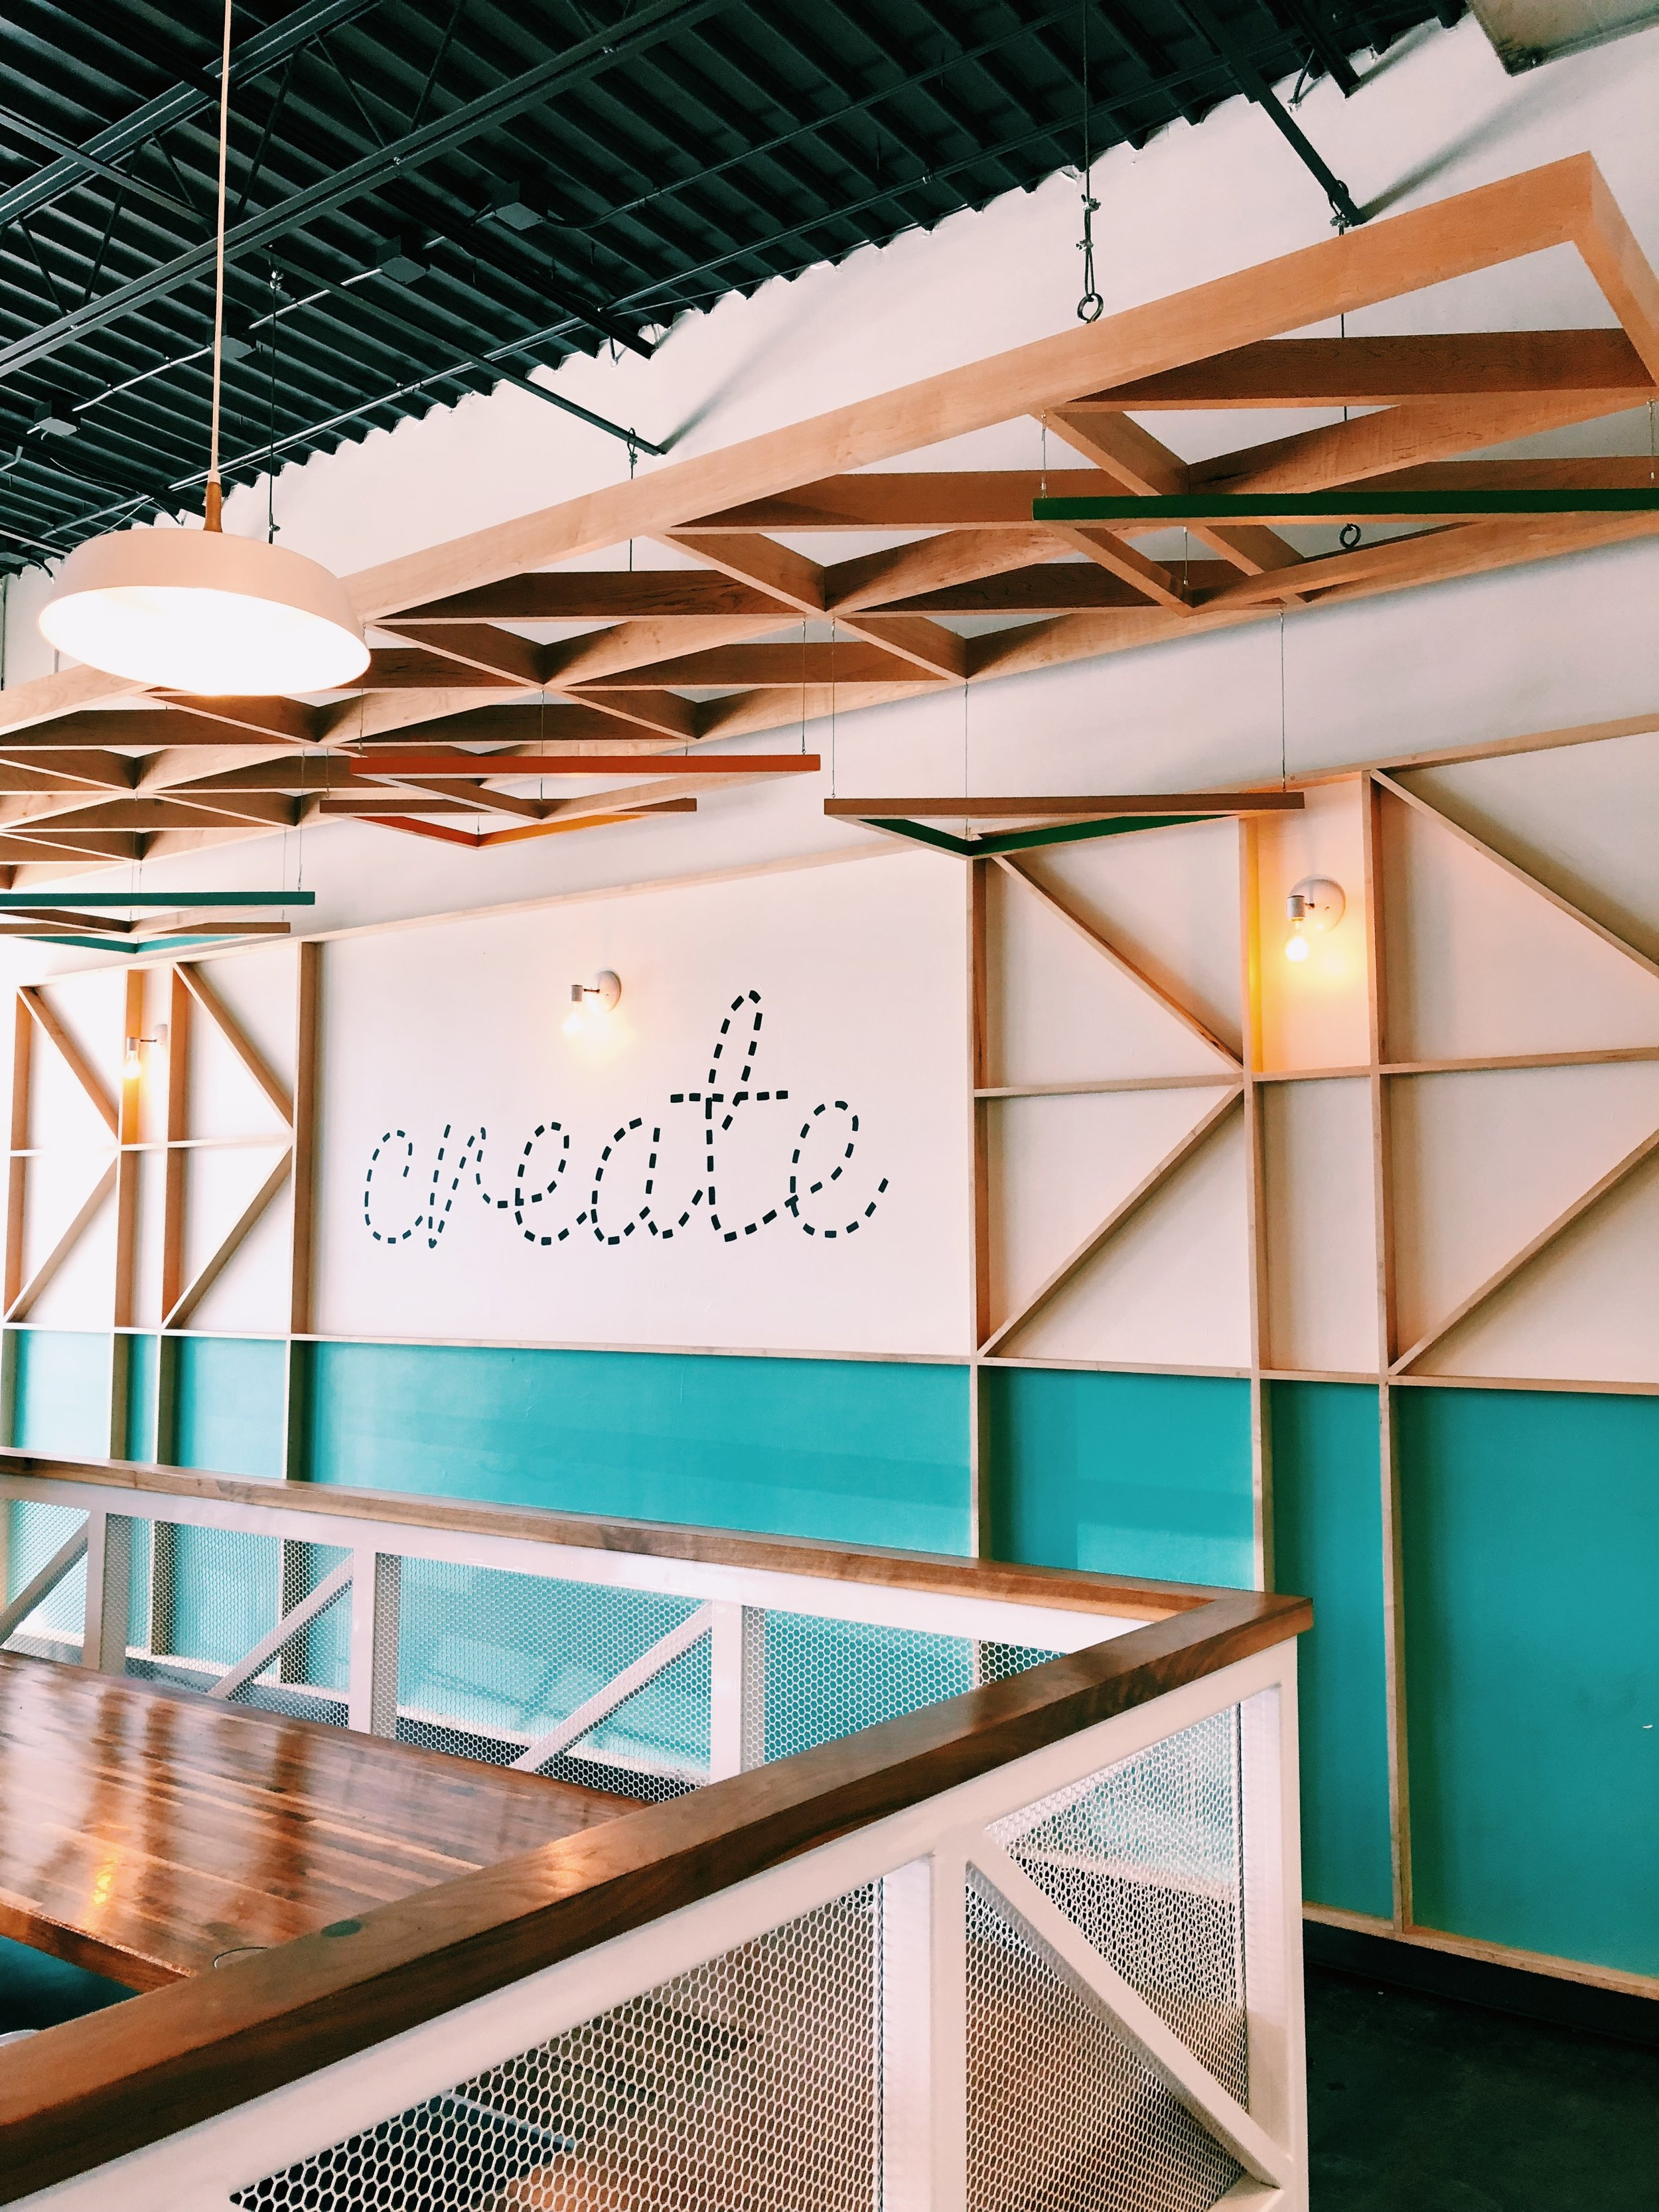 co-working space fuels creativity